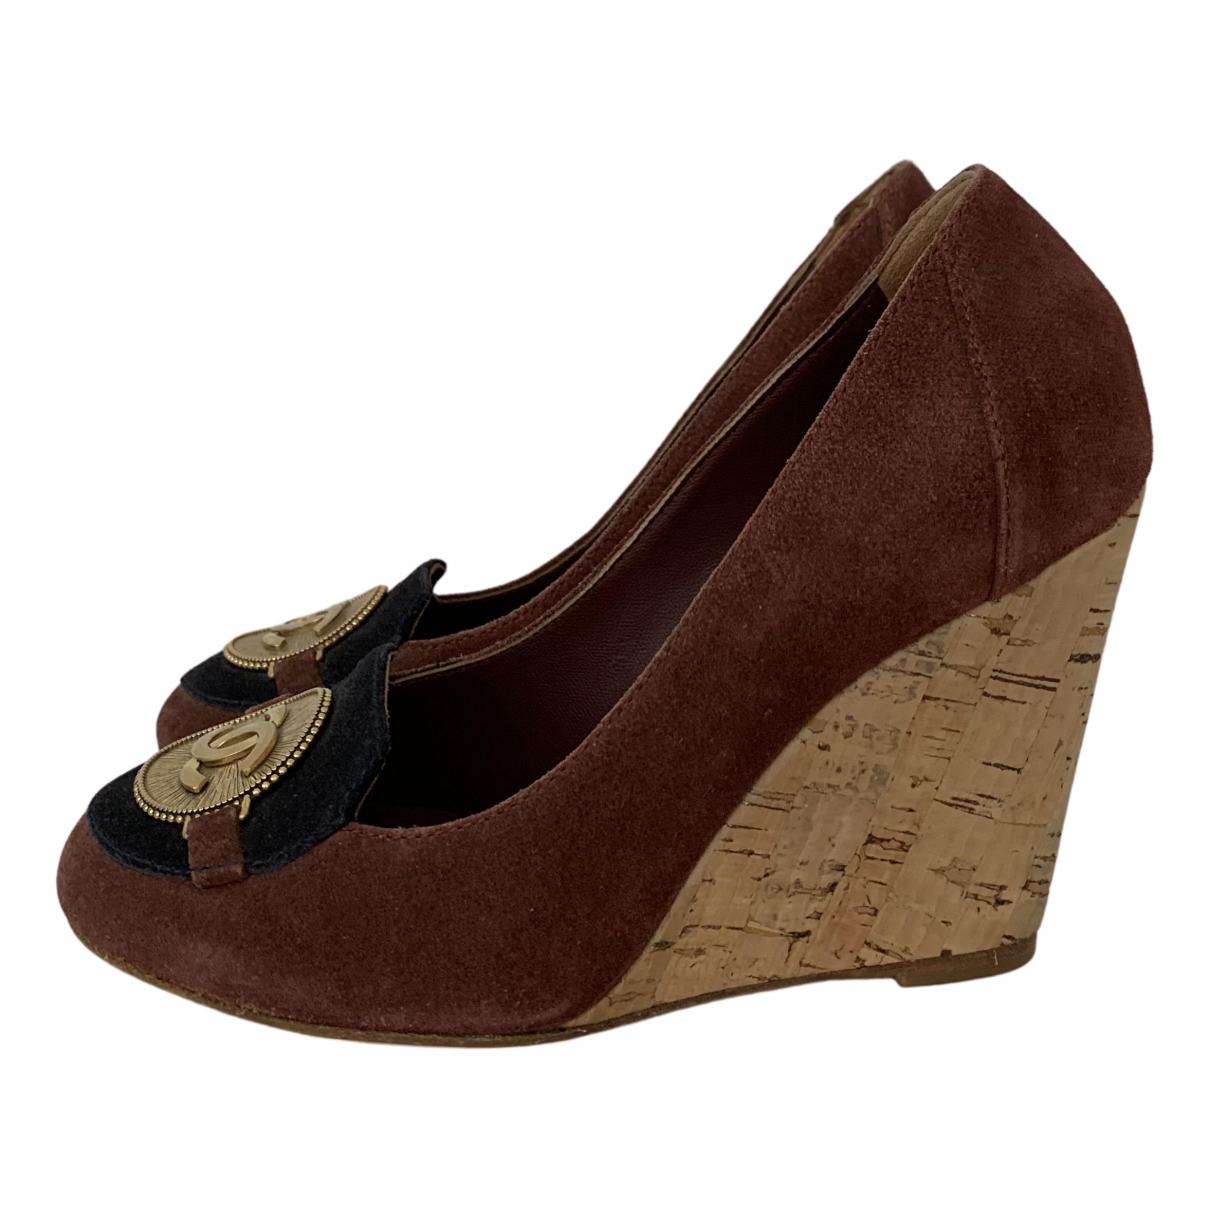 Chanel N Brown Suede Heels for Women 36.5 EU